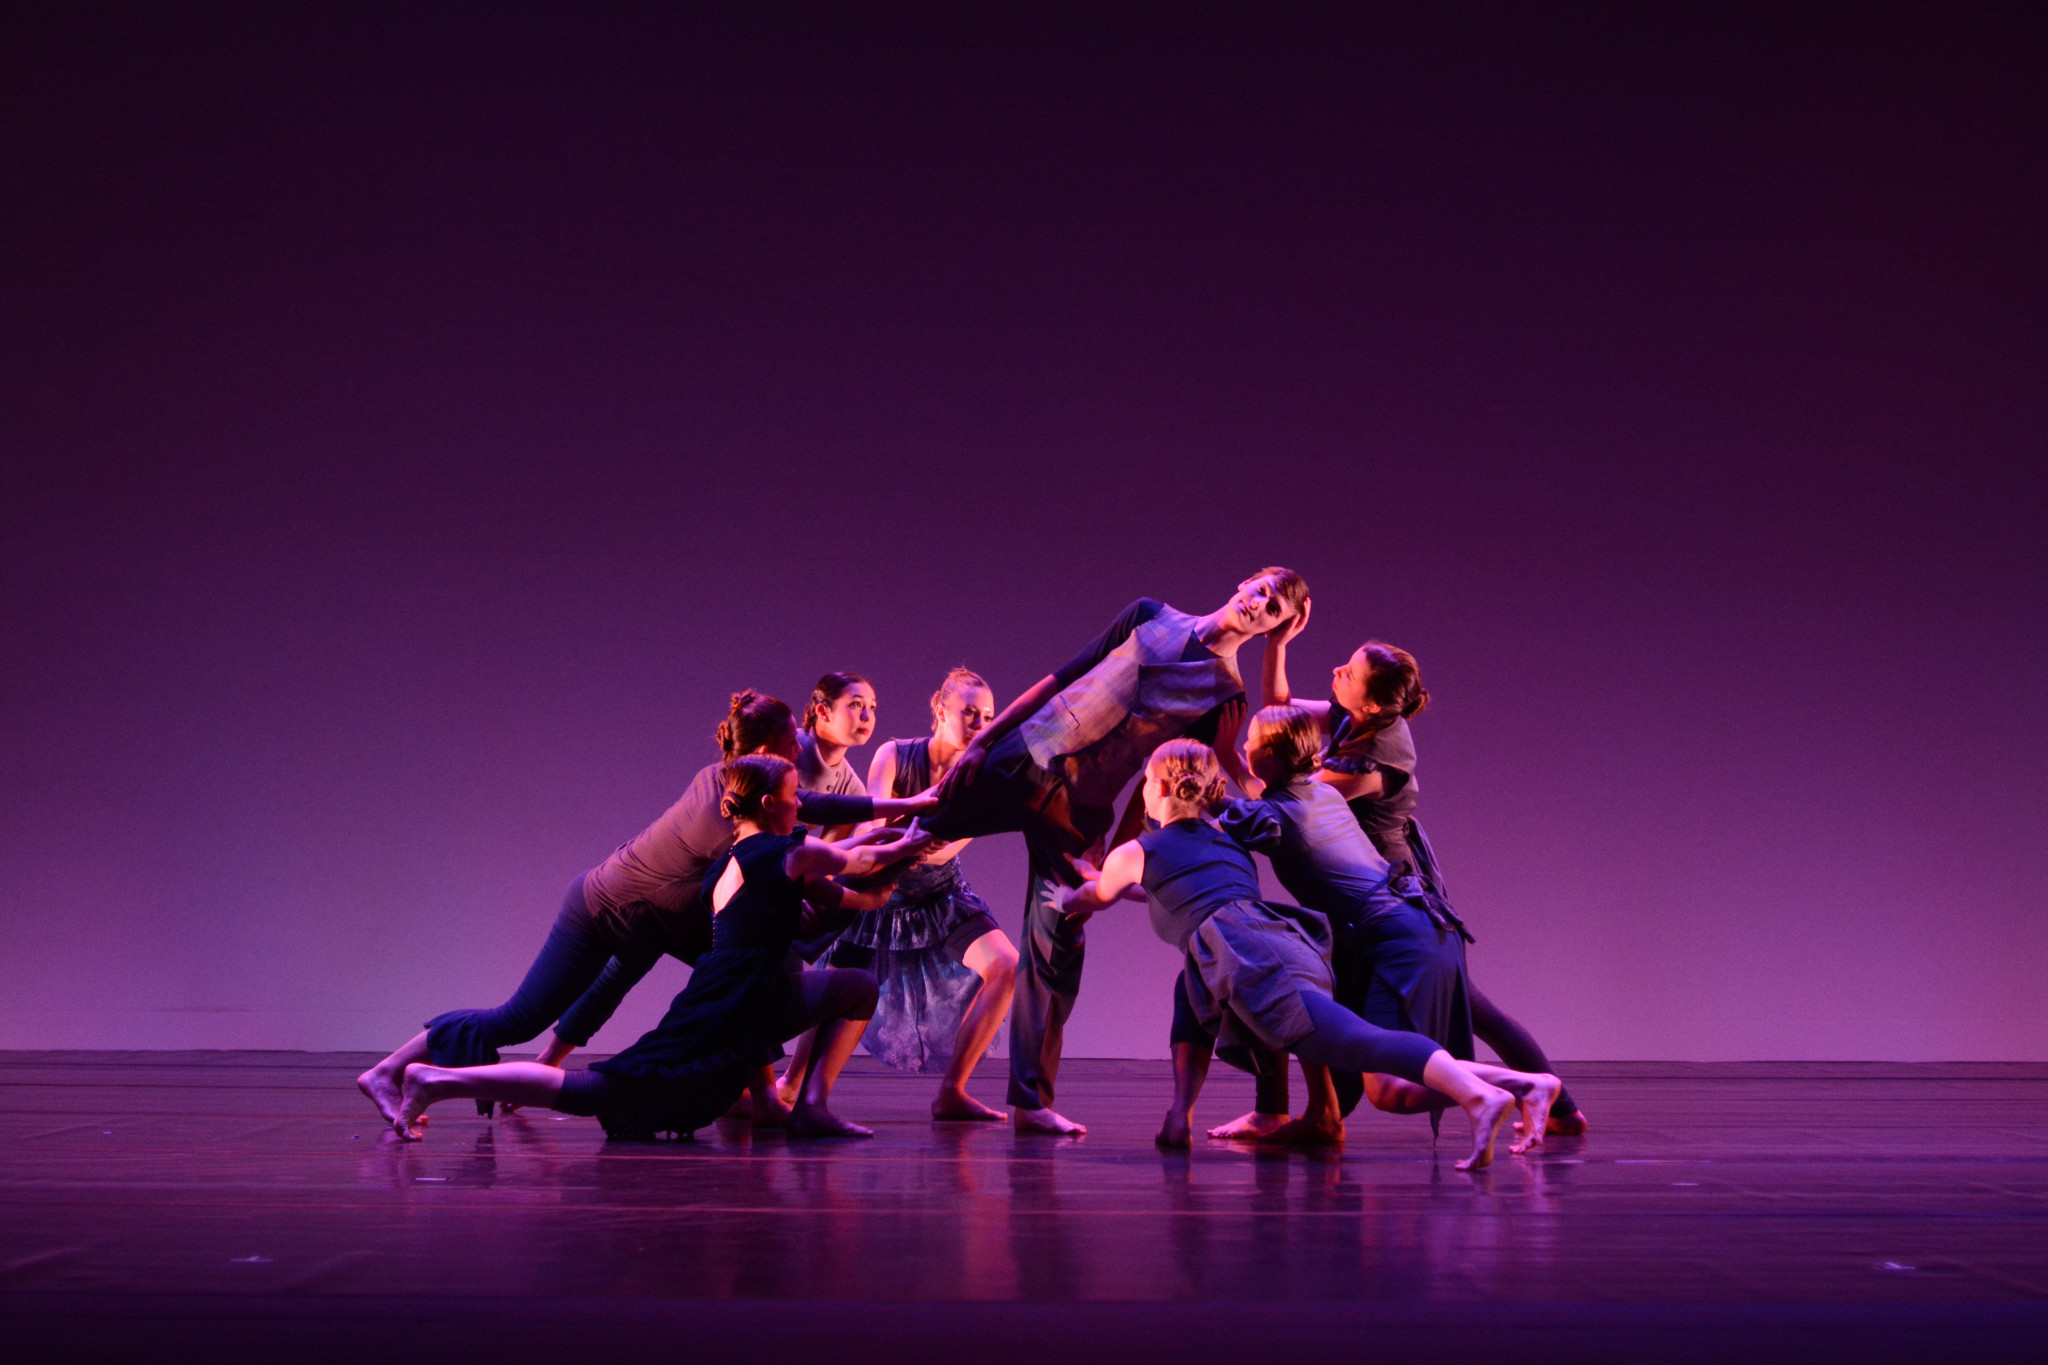 """""""The Risk of Standing Still"""" featured dark costumes and minimal lighting, with dancers performing slow, subtle movements juxtaposed against abrupt arm swings and placement changes. COURTESY PHOTO / GEOFF WADE"""